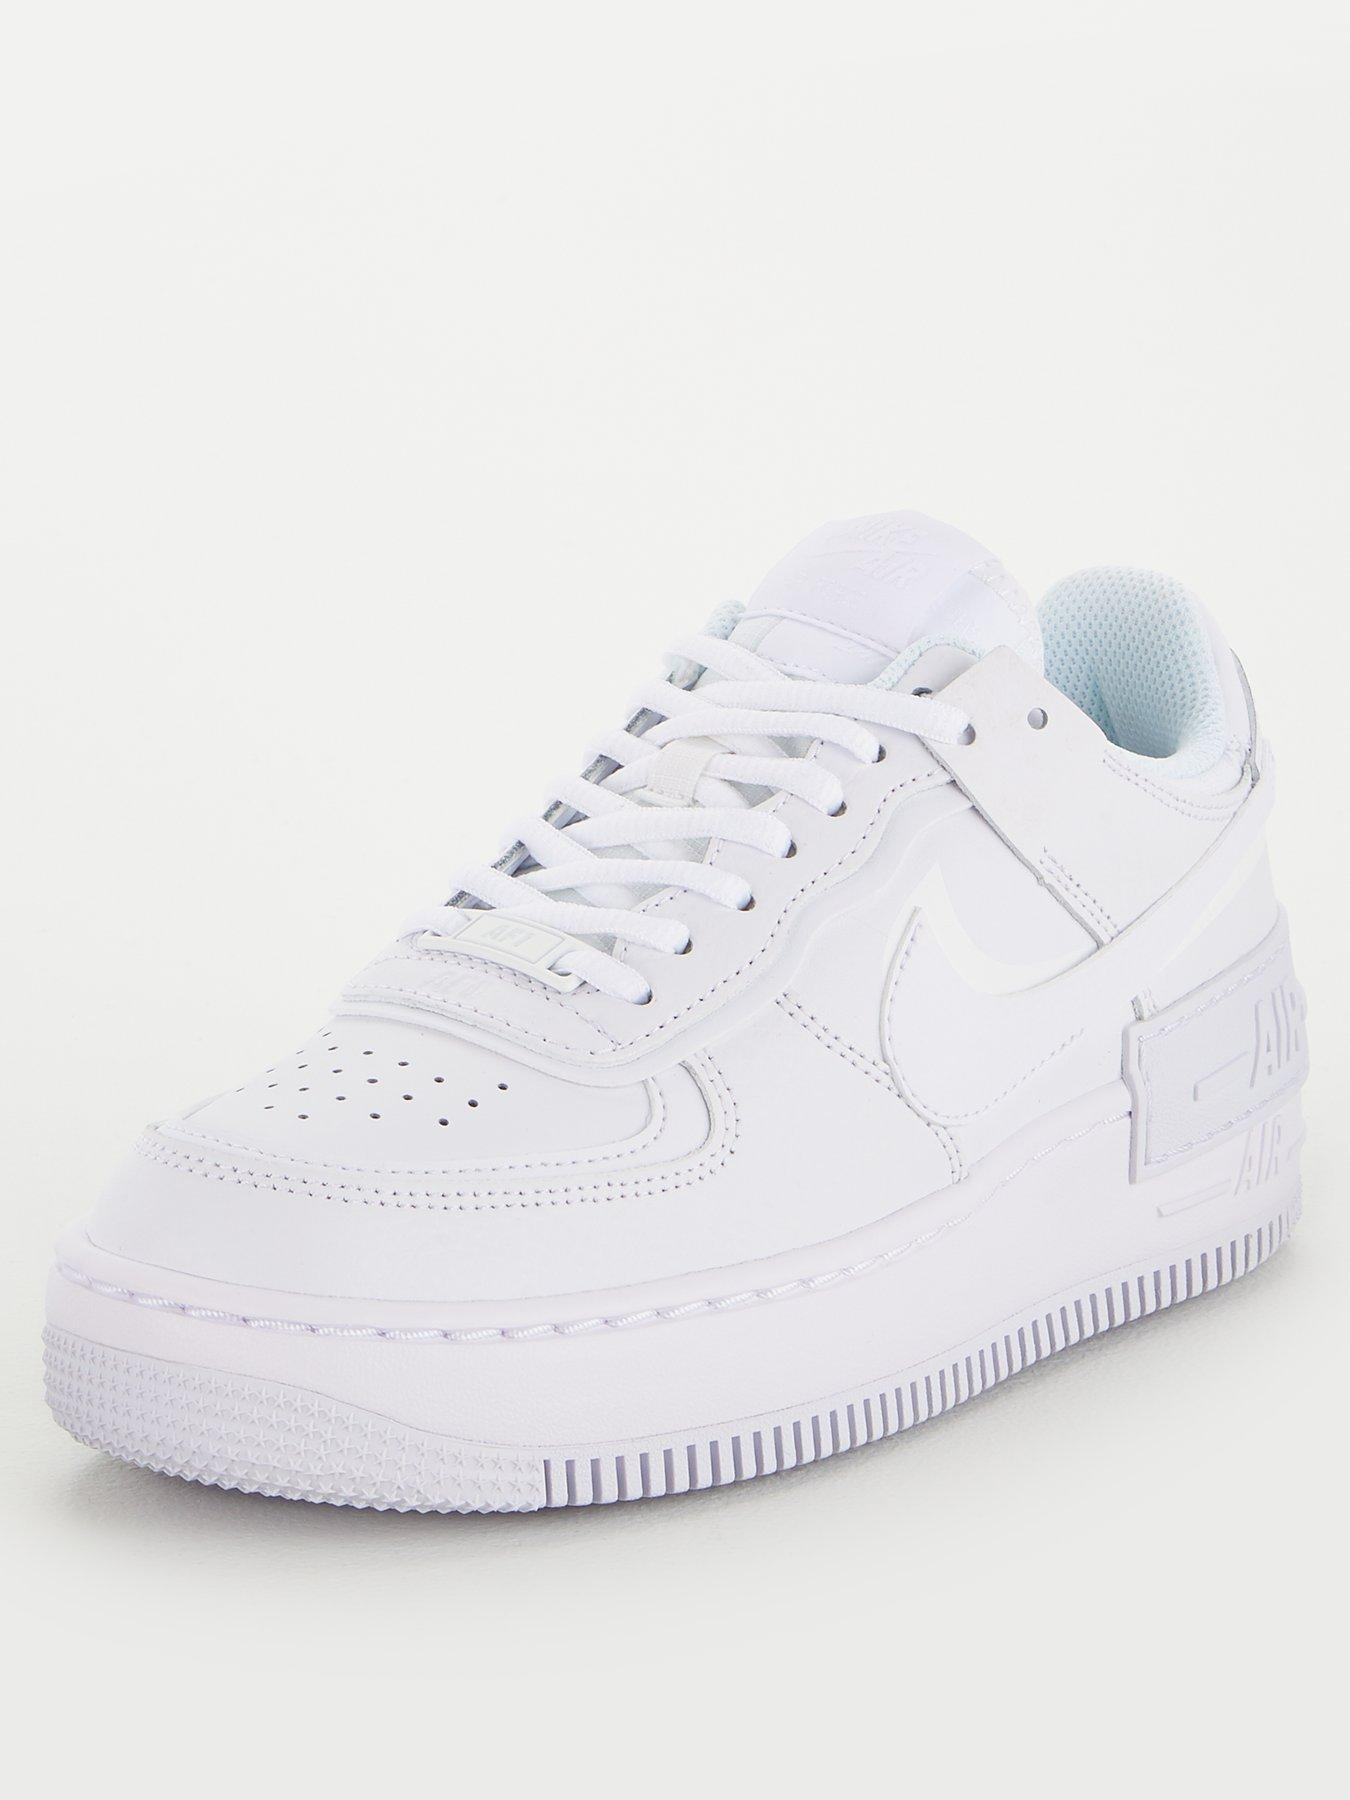 Nike Air Force 1 | www.littlewoods.com